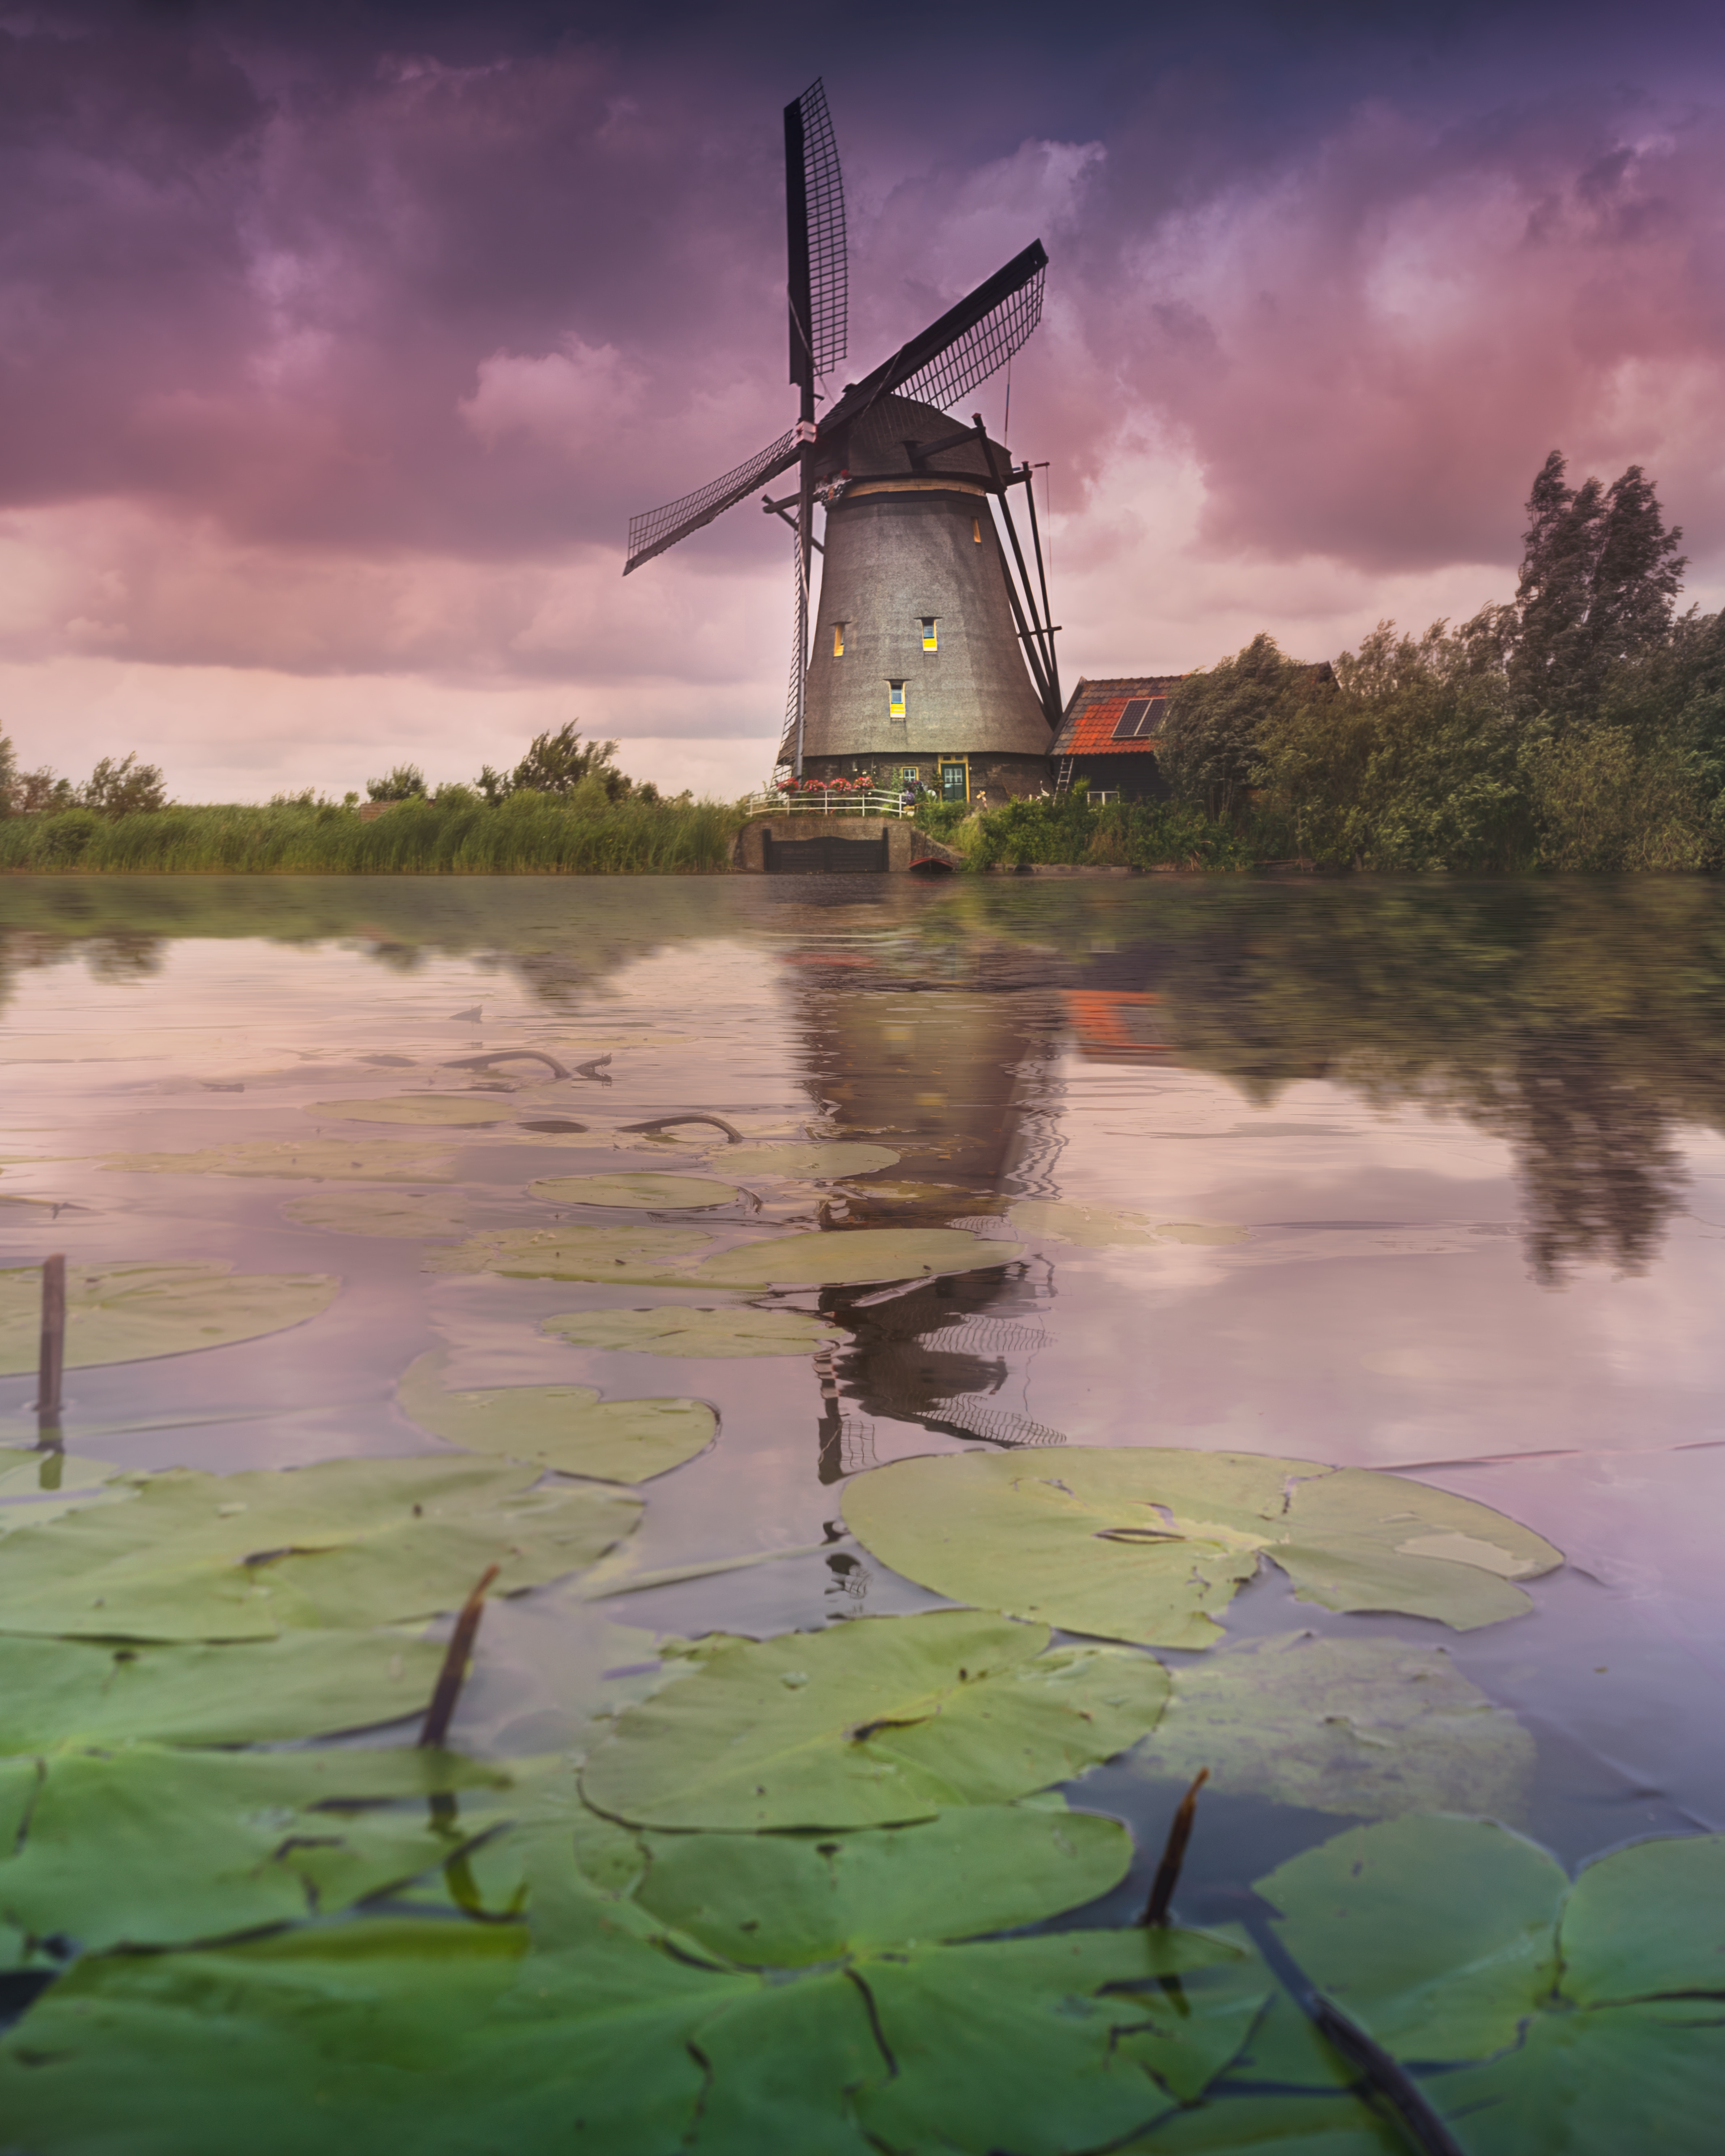 Vicariously living through her family's upcoming river cruise trip, StephanieCristi shares her top things to do in Kinderdijk, Netherlands.